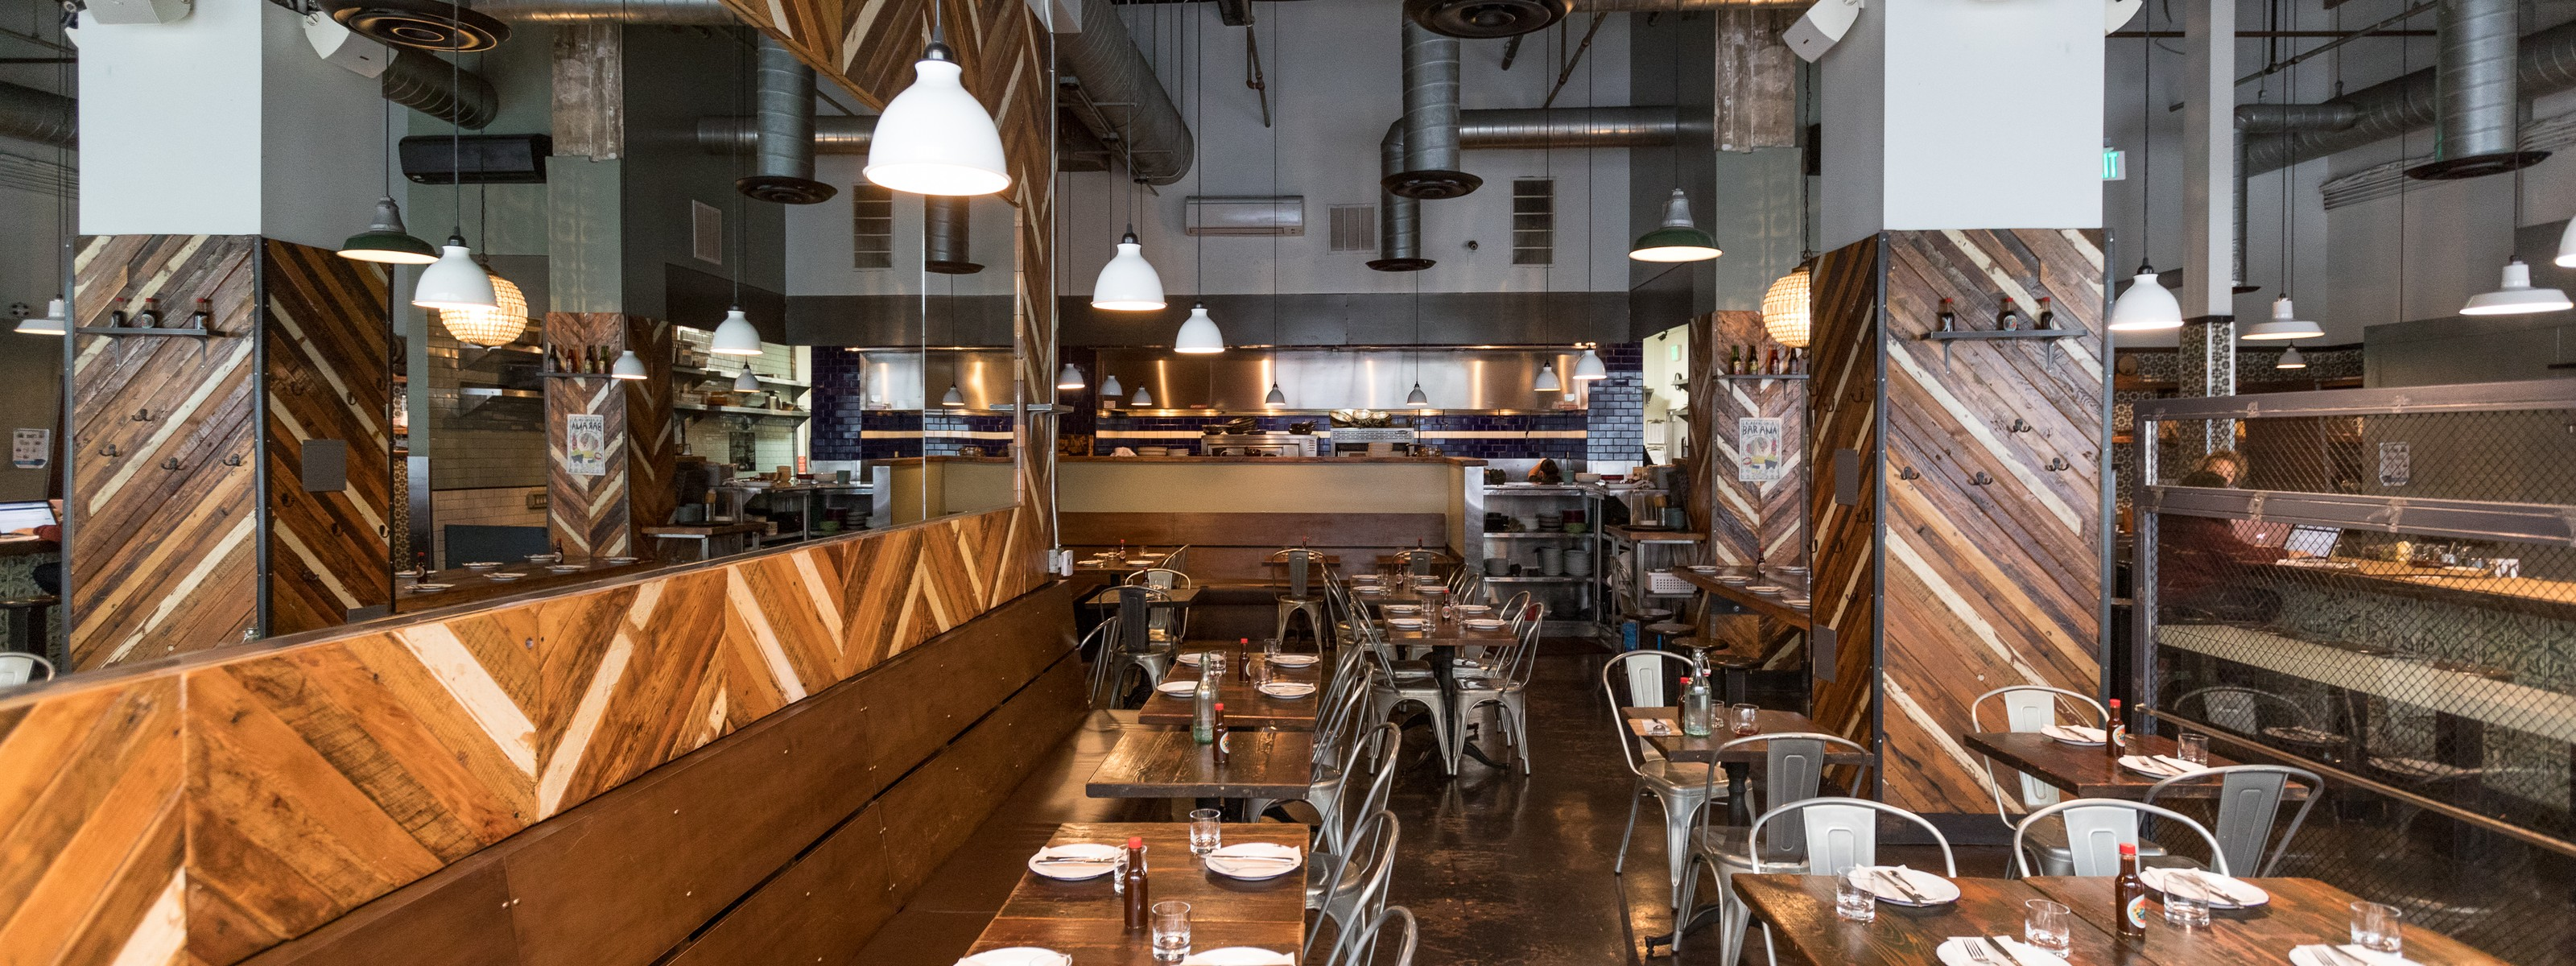 La S Best Restaurants For Affordable Group Dinners Los